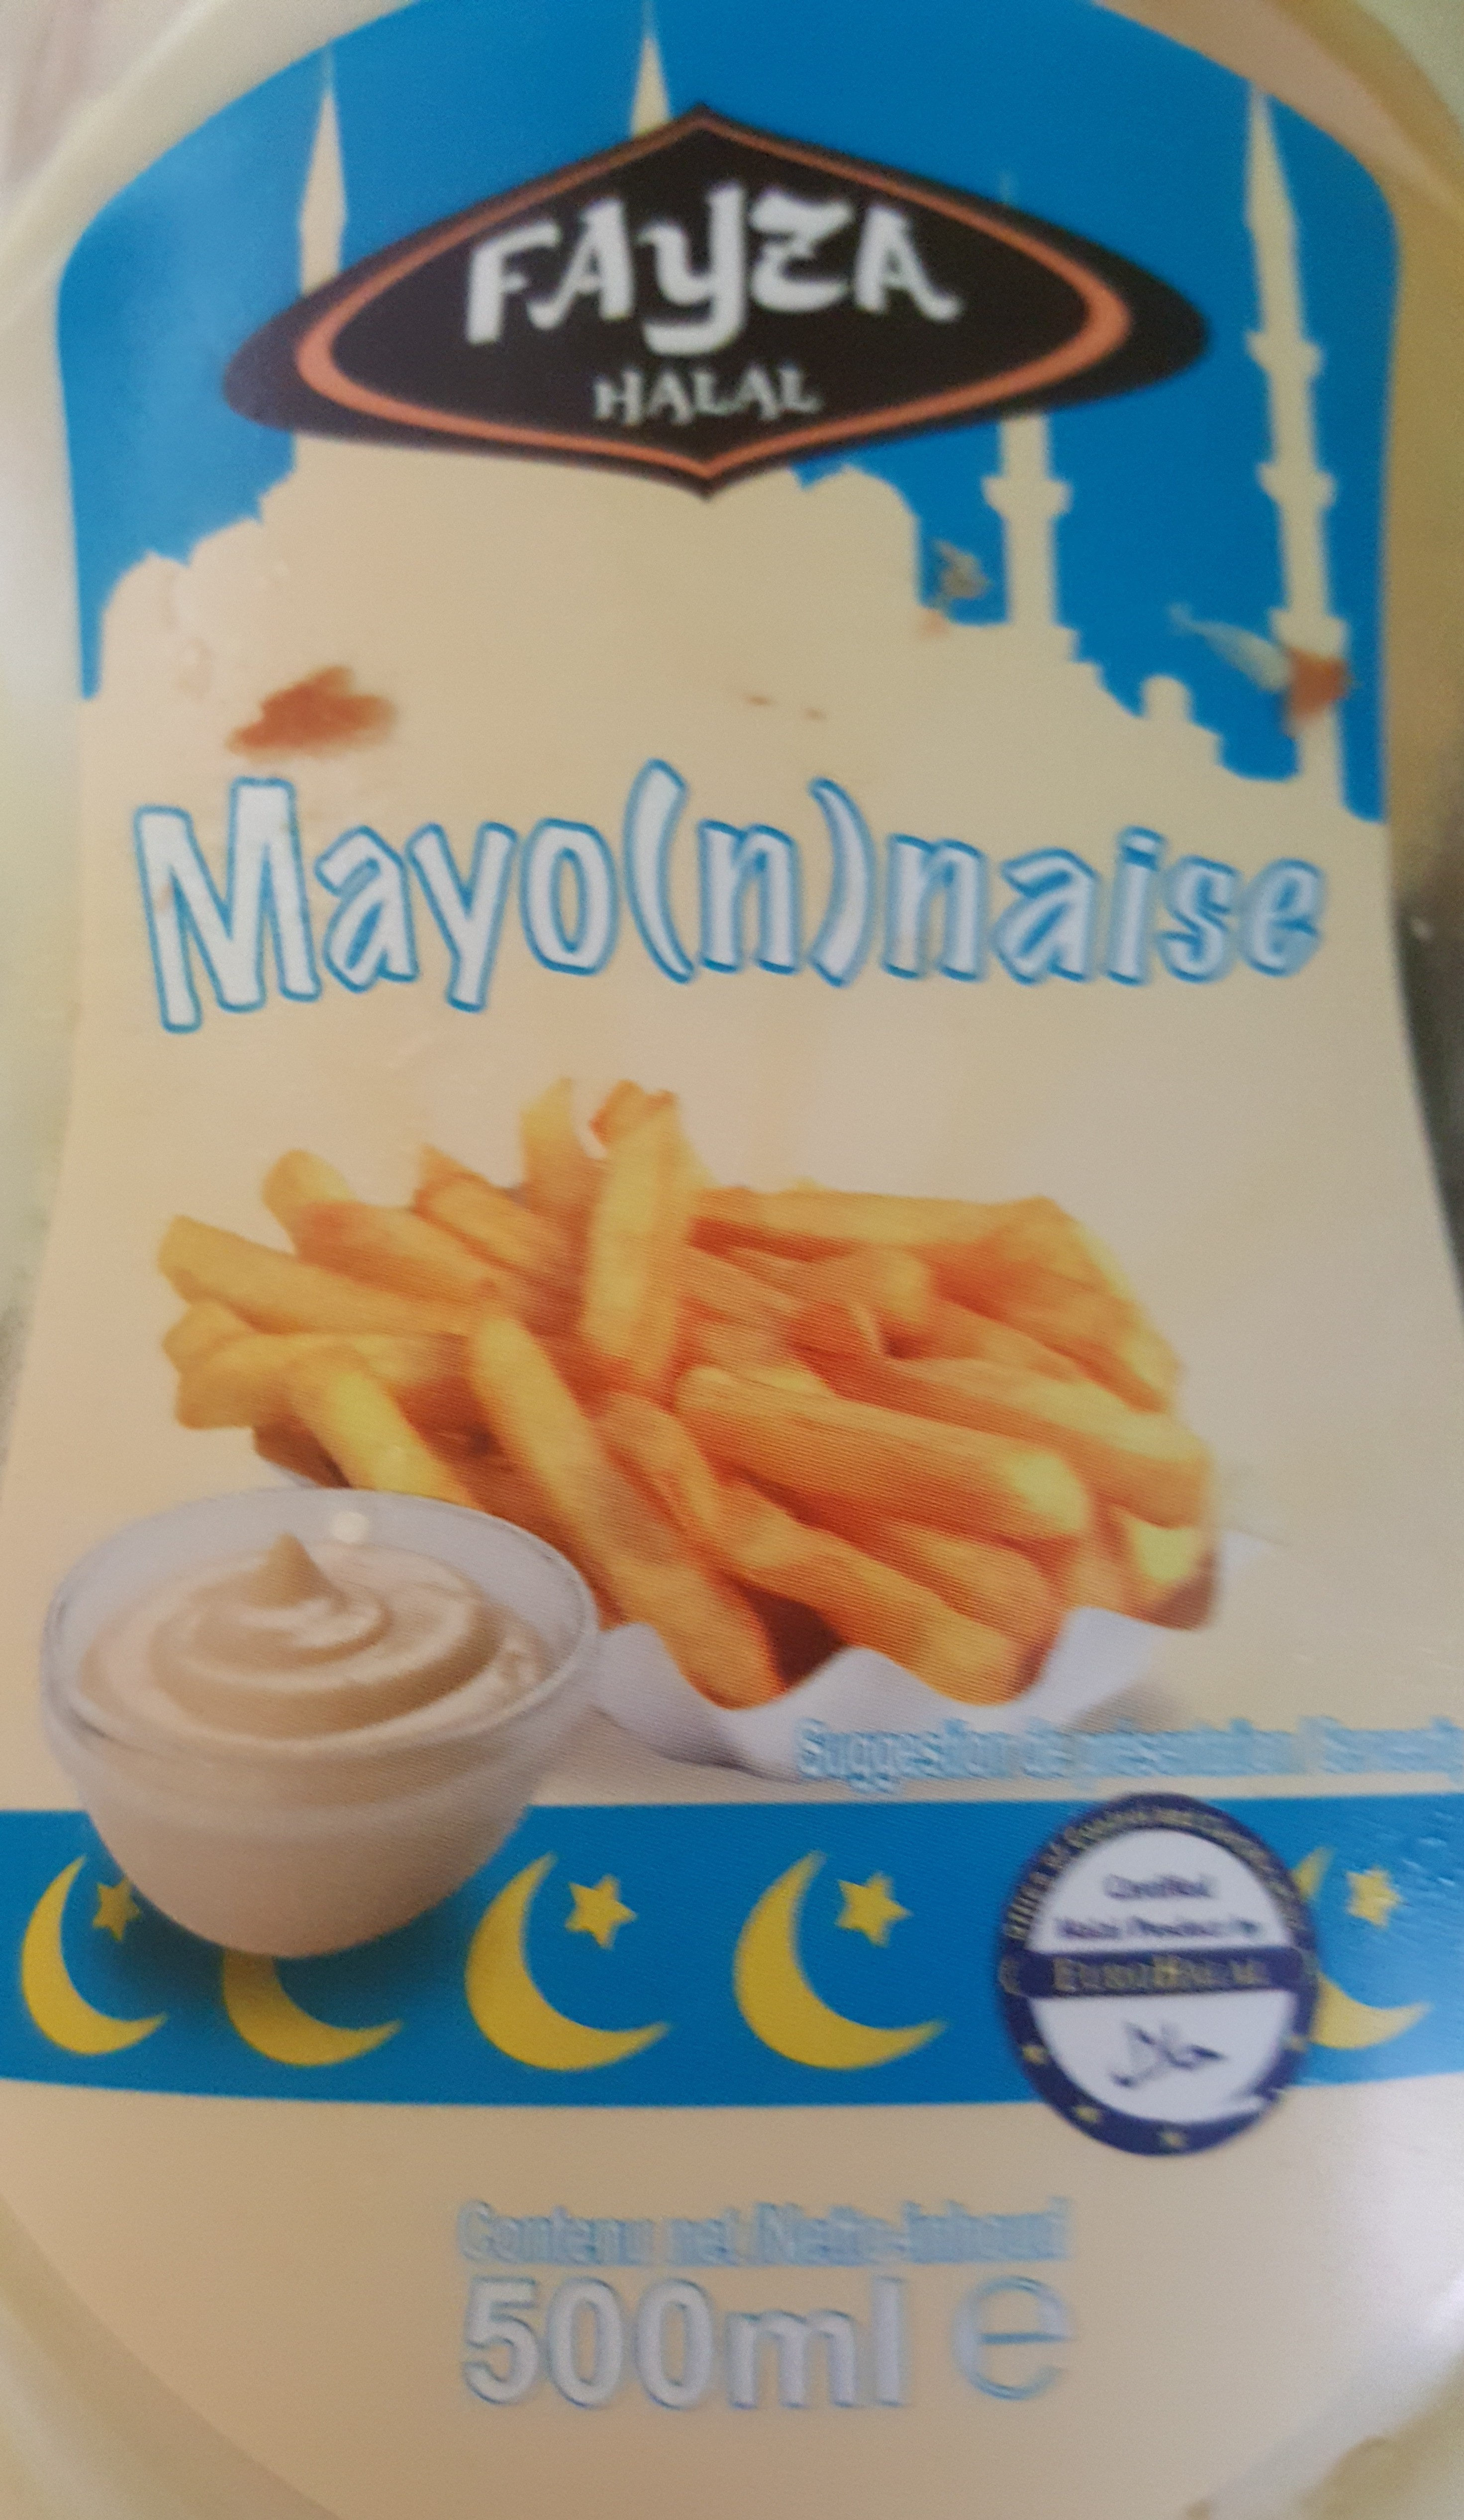 mayo(n)aise - Product